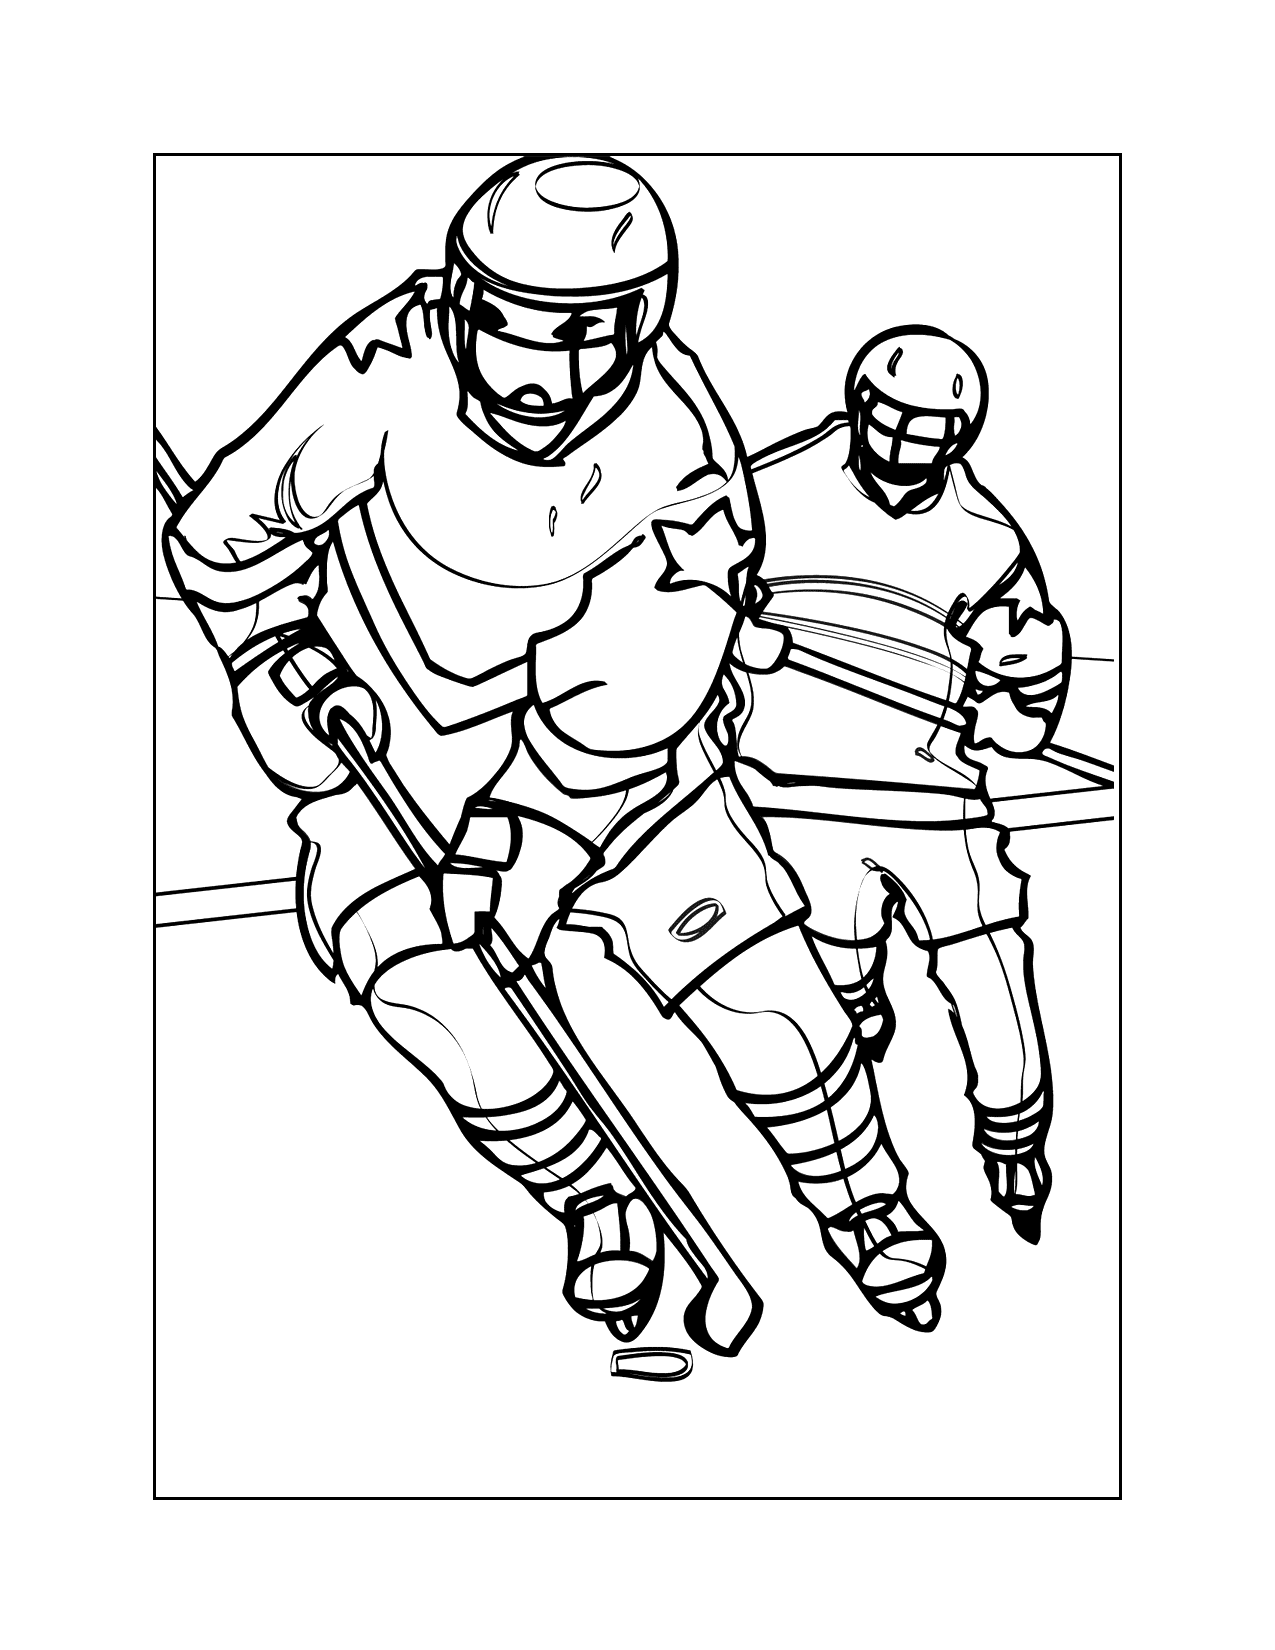 Hockey Players Coloring Page